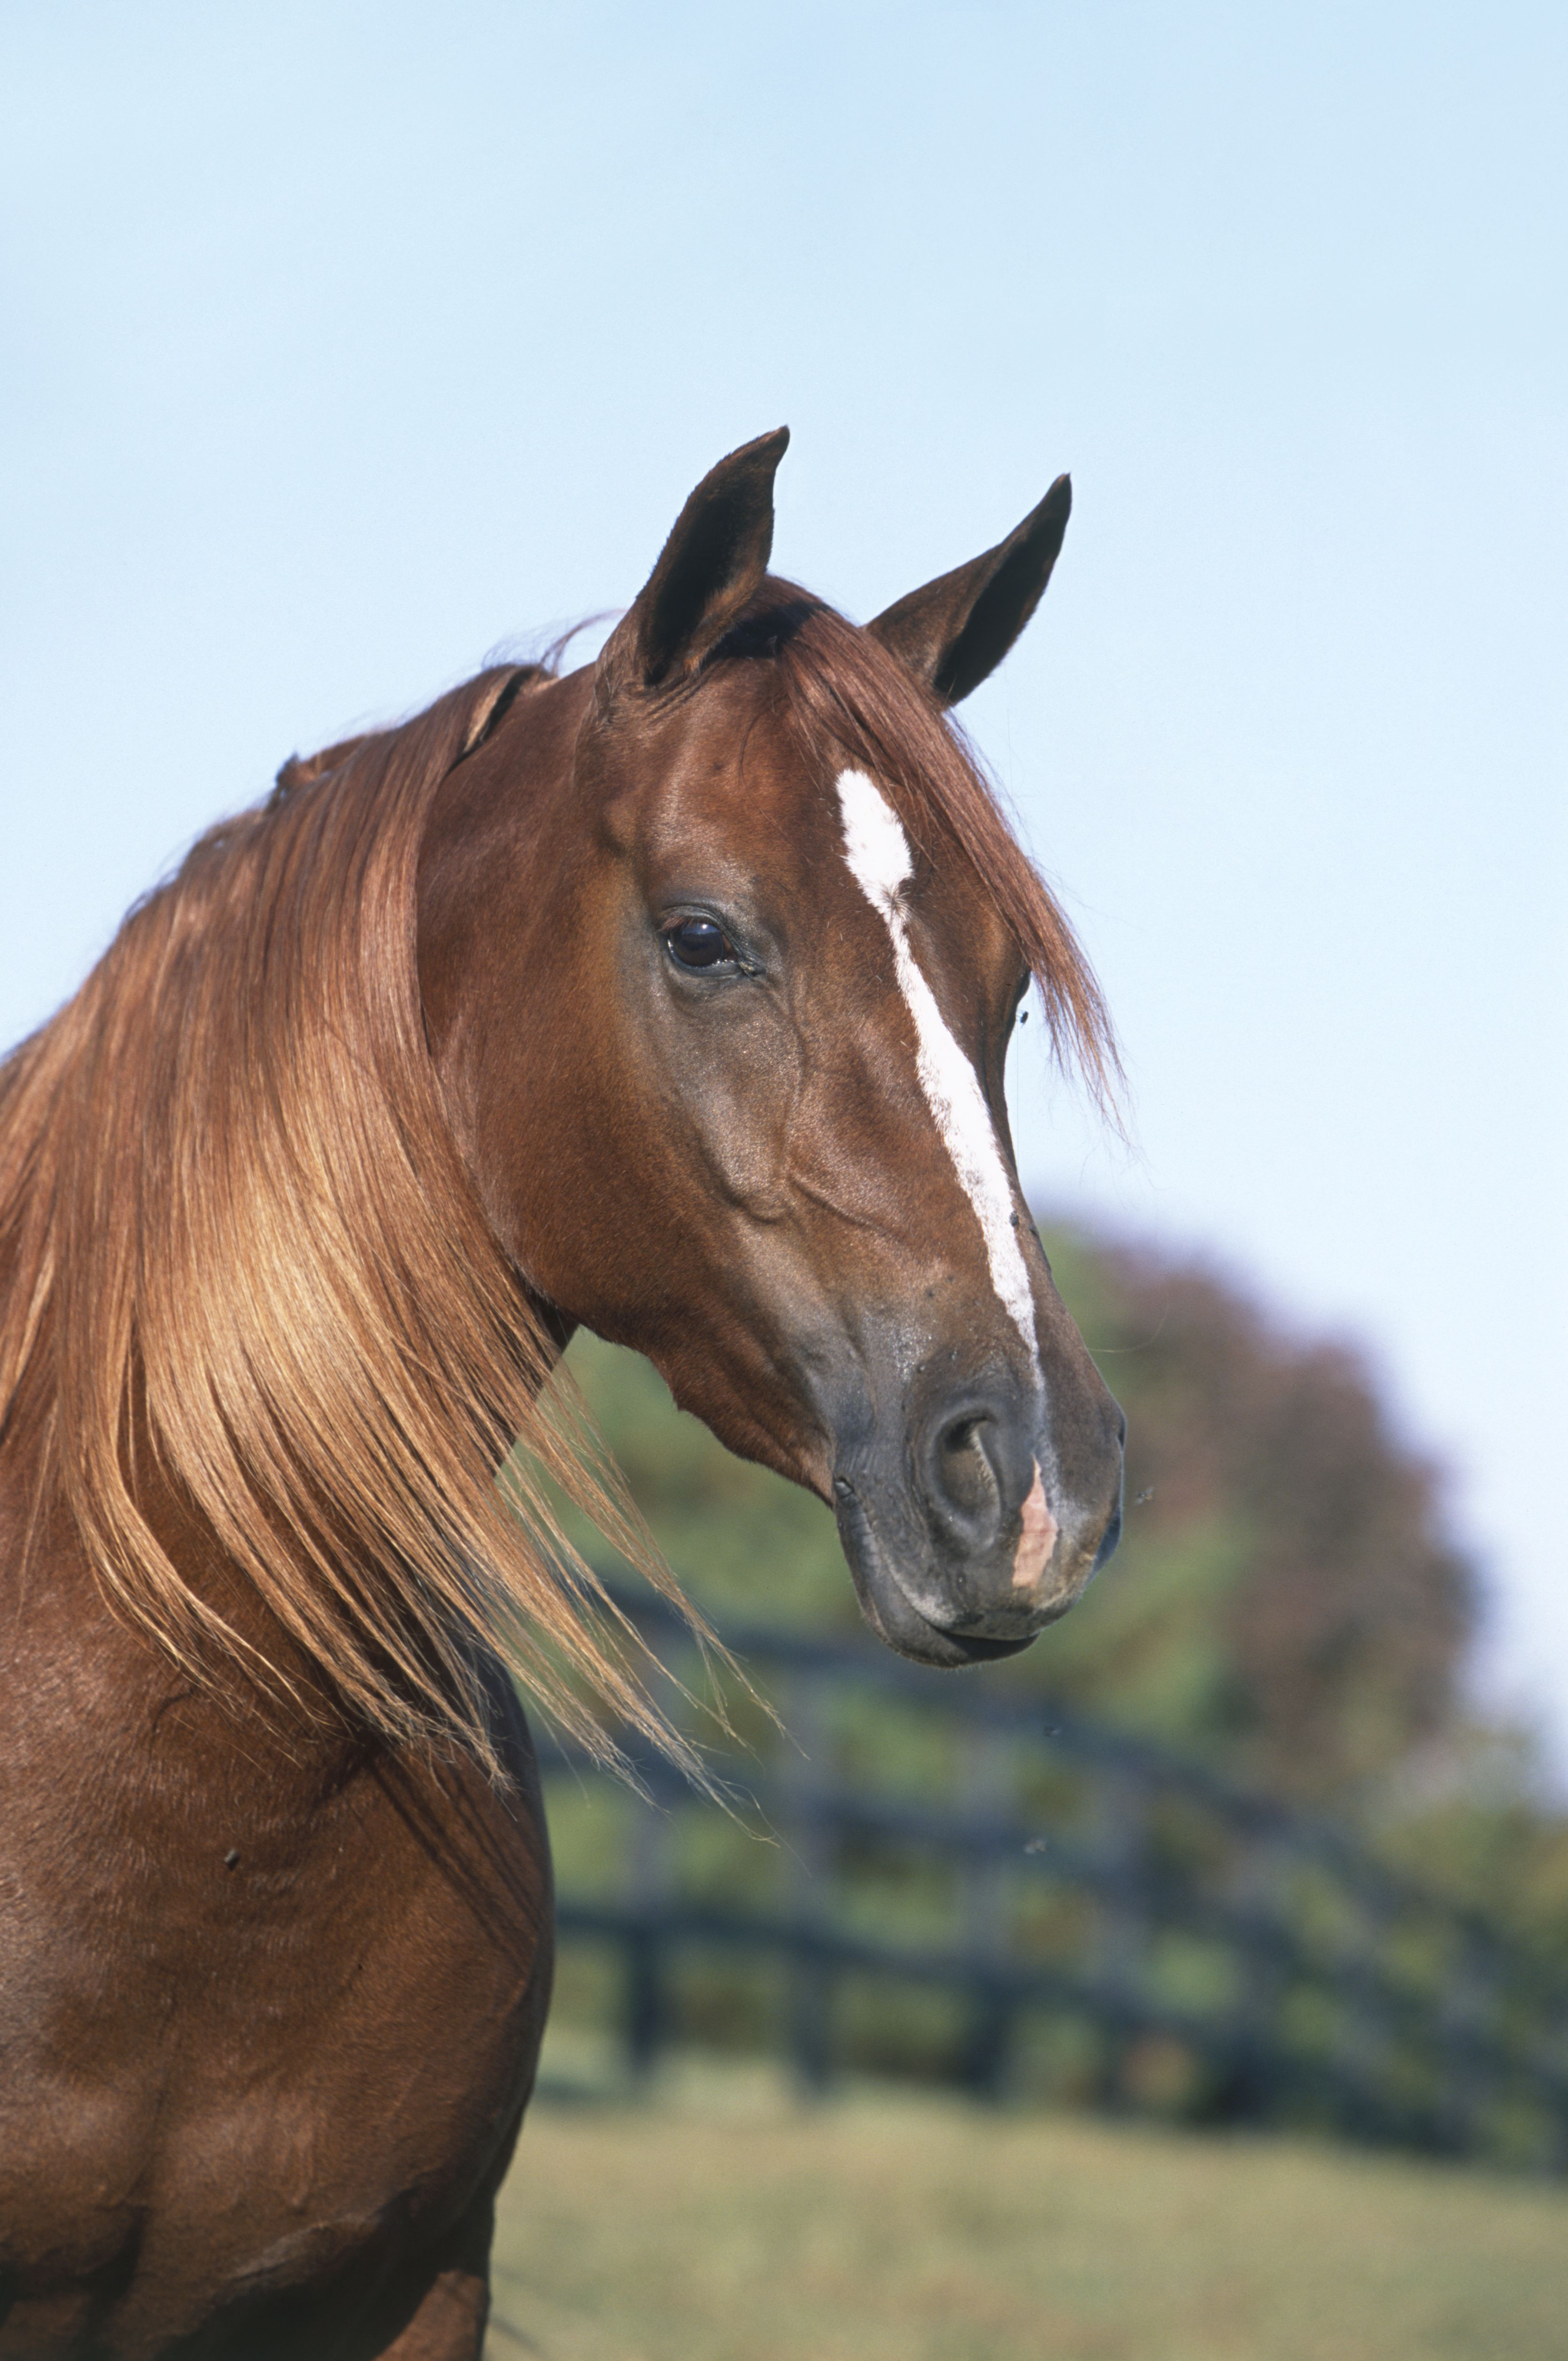 Head of chestnut Morab horse showing Arabian characteristics, white blaze and long, flowing mane